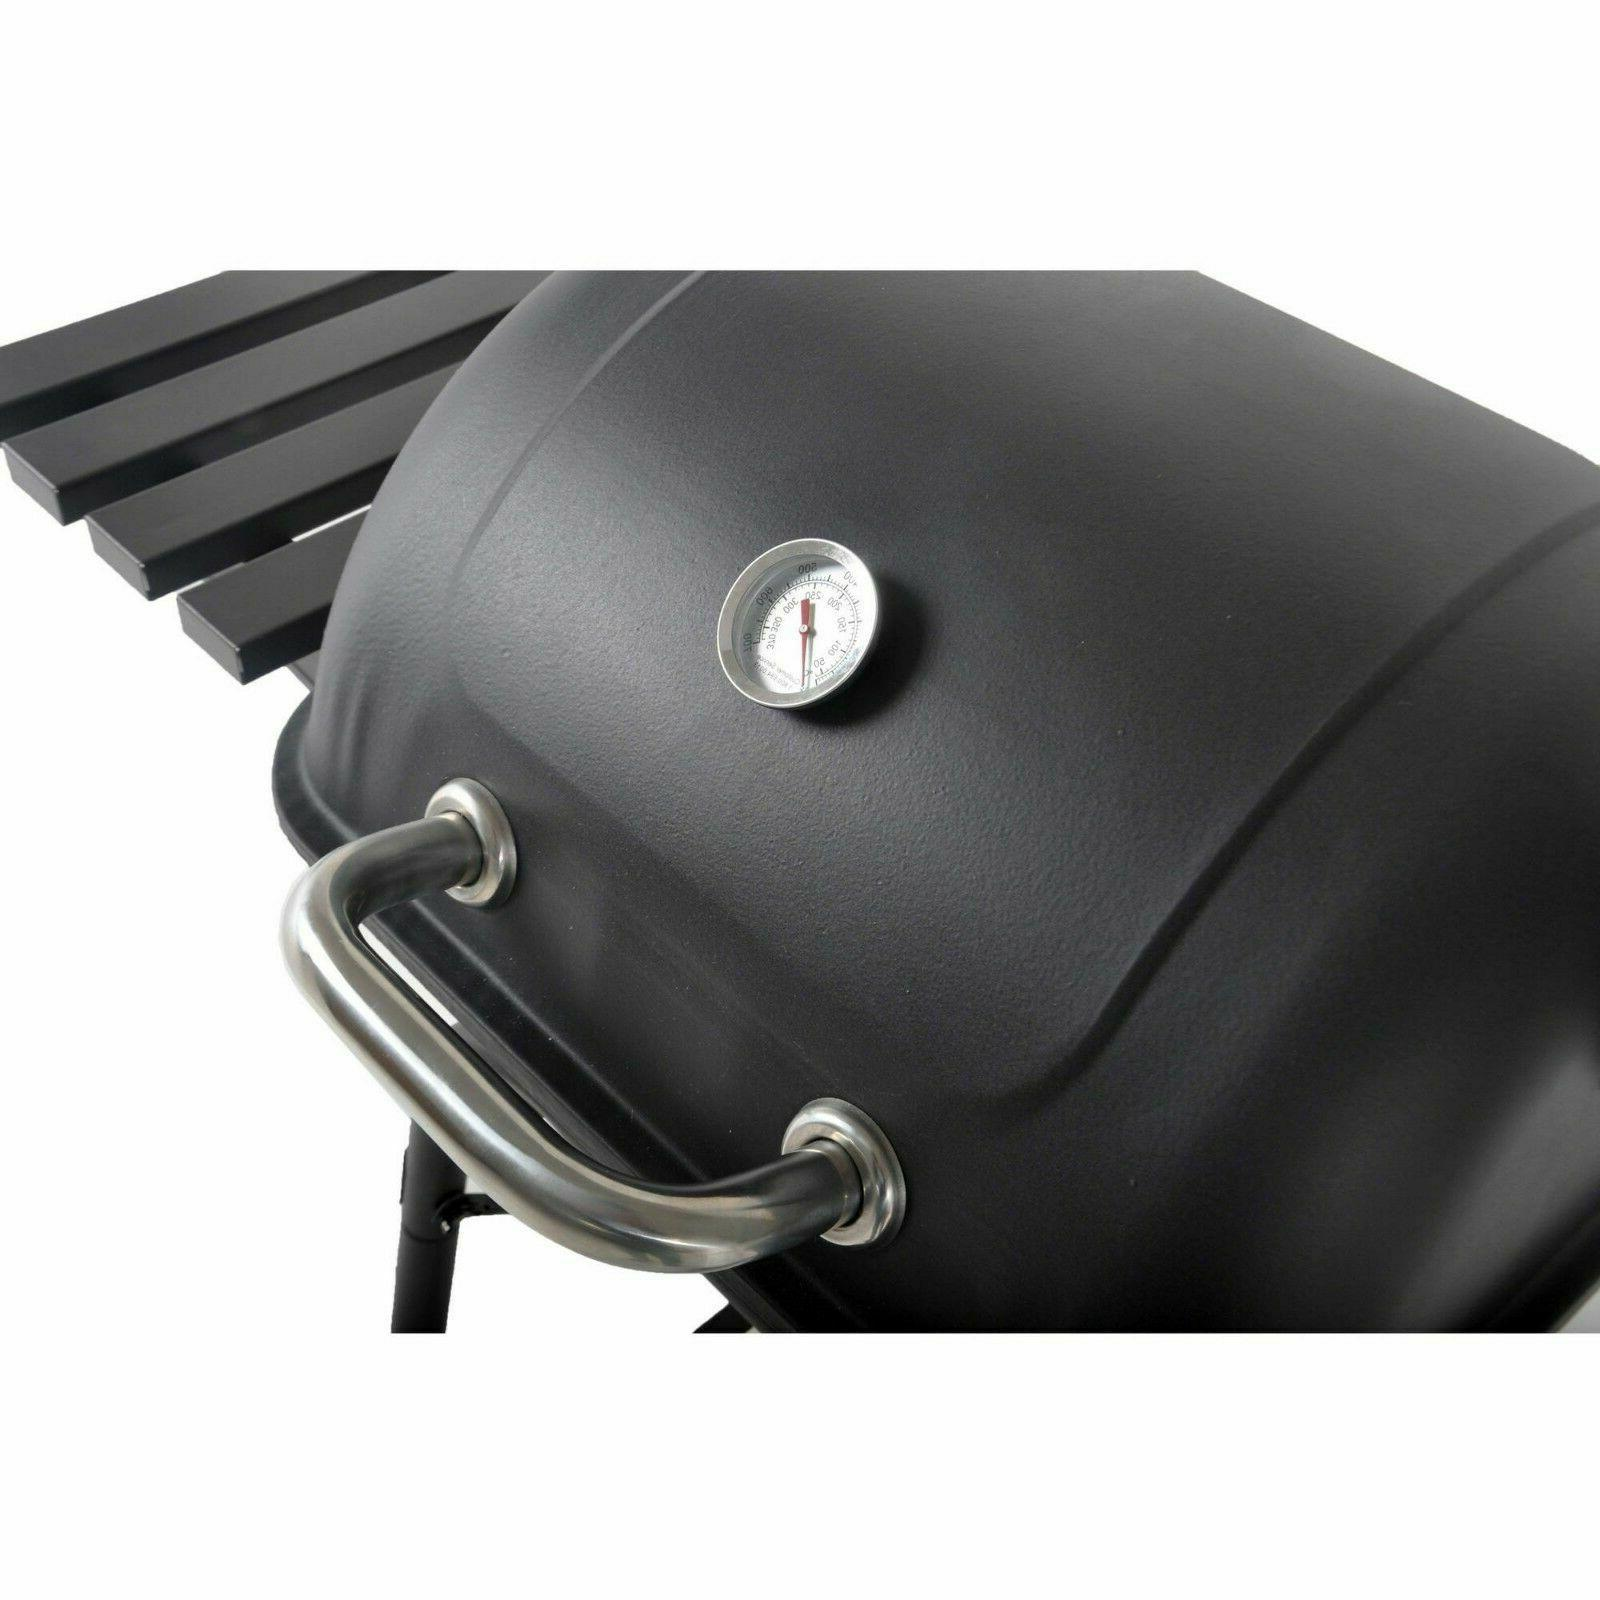 Charcoal Grill BBQ Smoker Backyard Outdoor Cooking